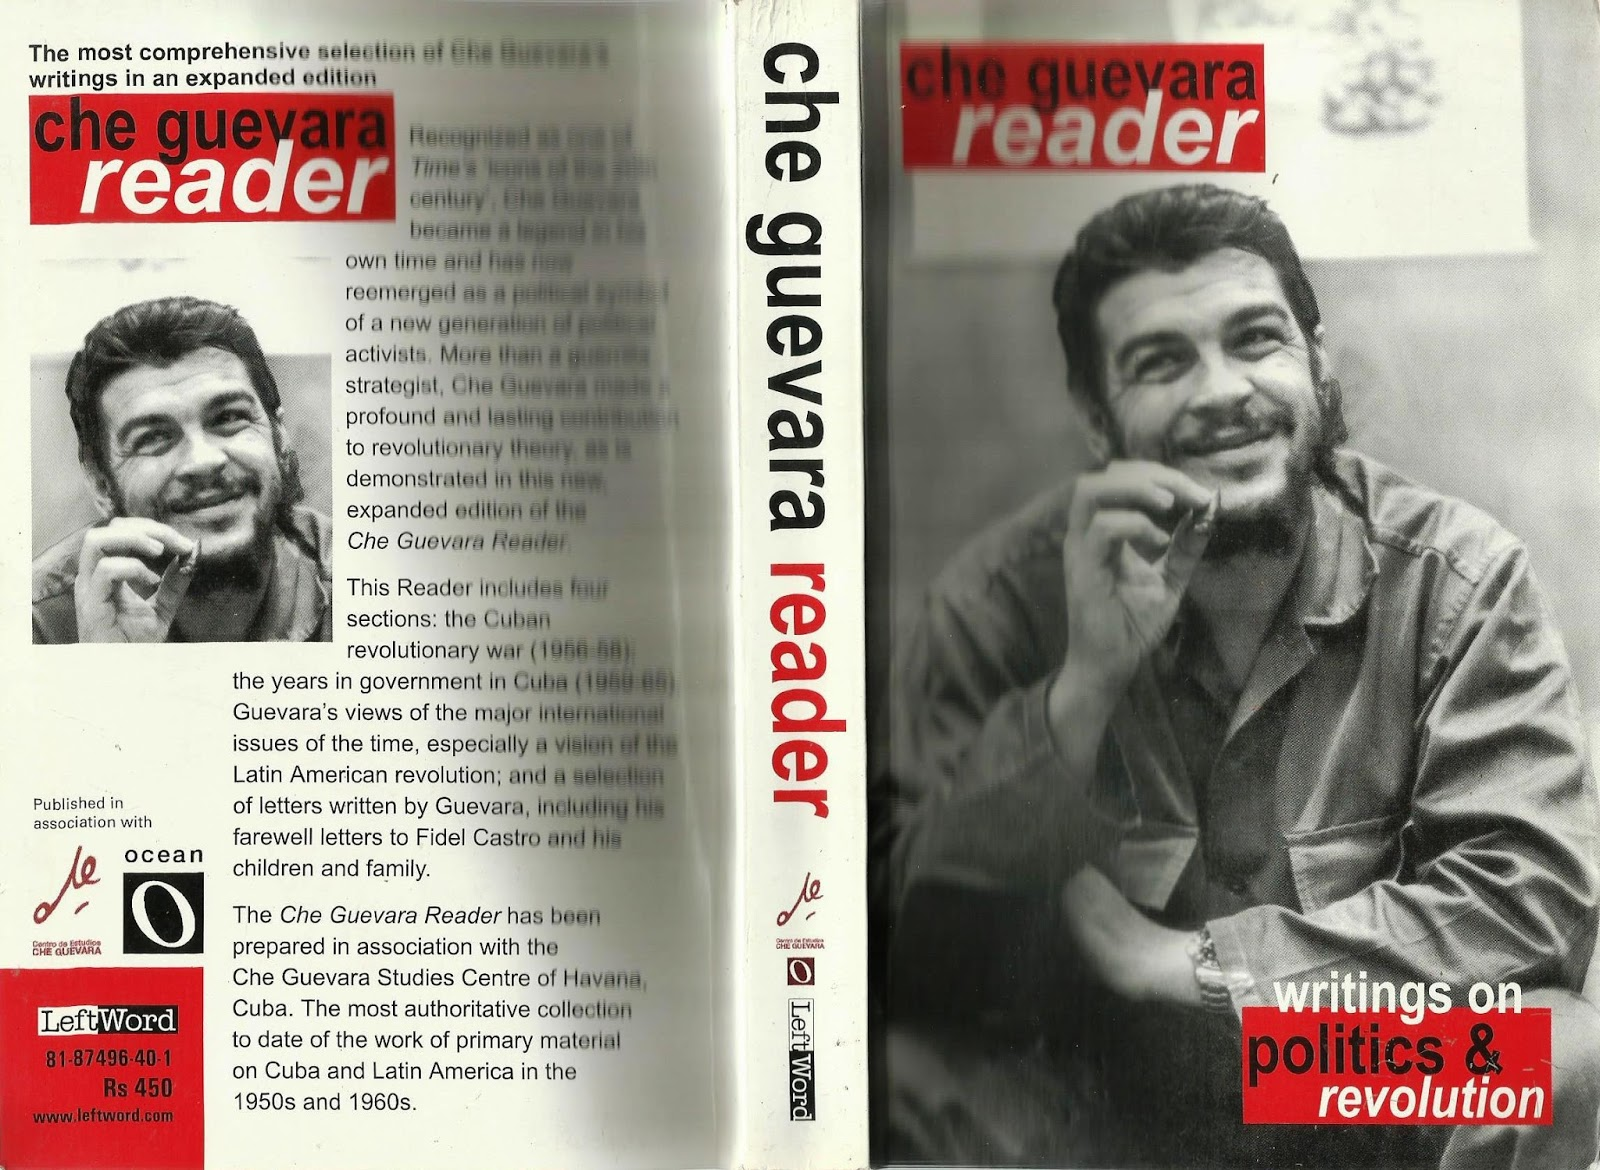 bhagat singh study chaman lal remembering most lovable che guevara reader writings on politics and revolution edited by david deutschmann leftword ocean new delhi ist n ed